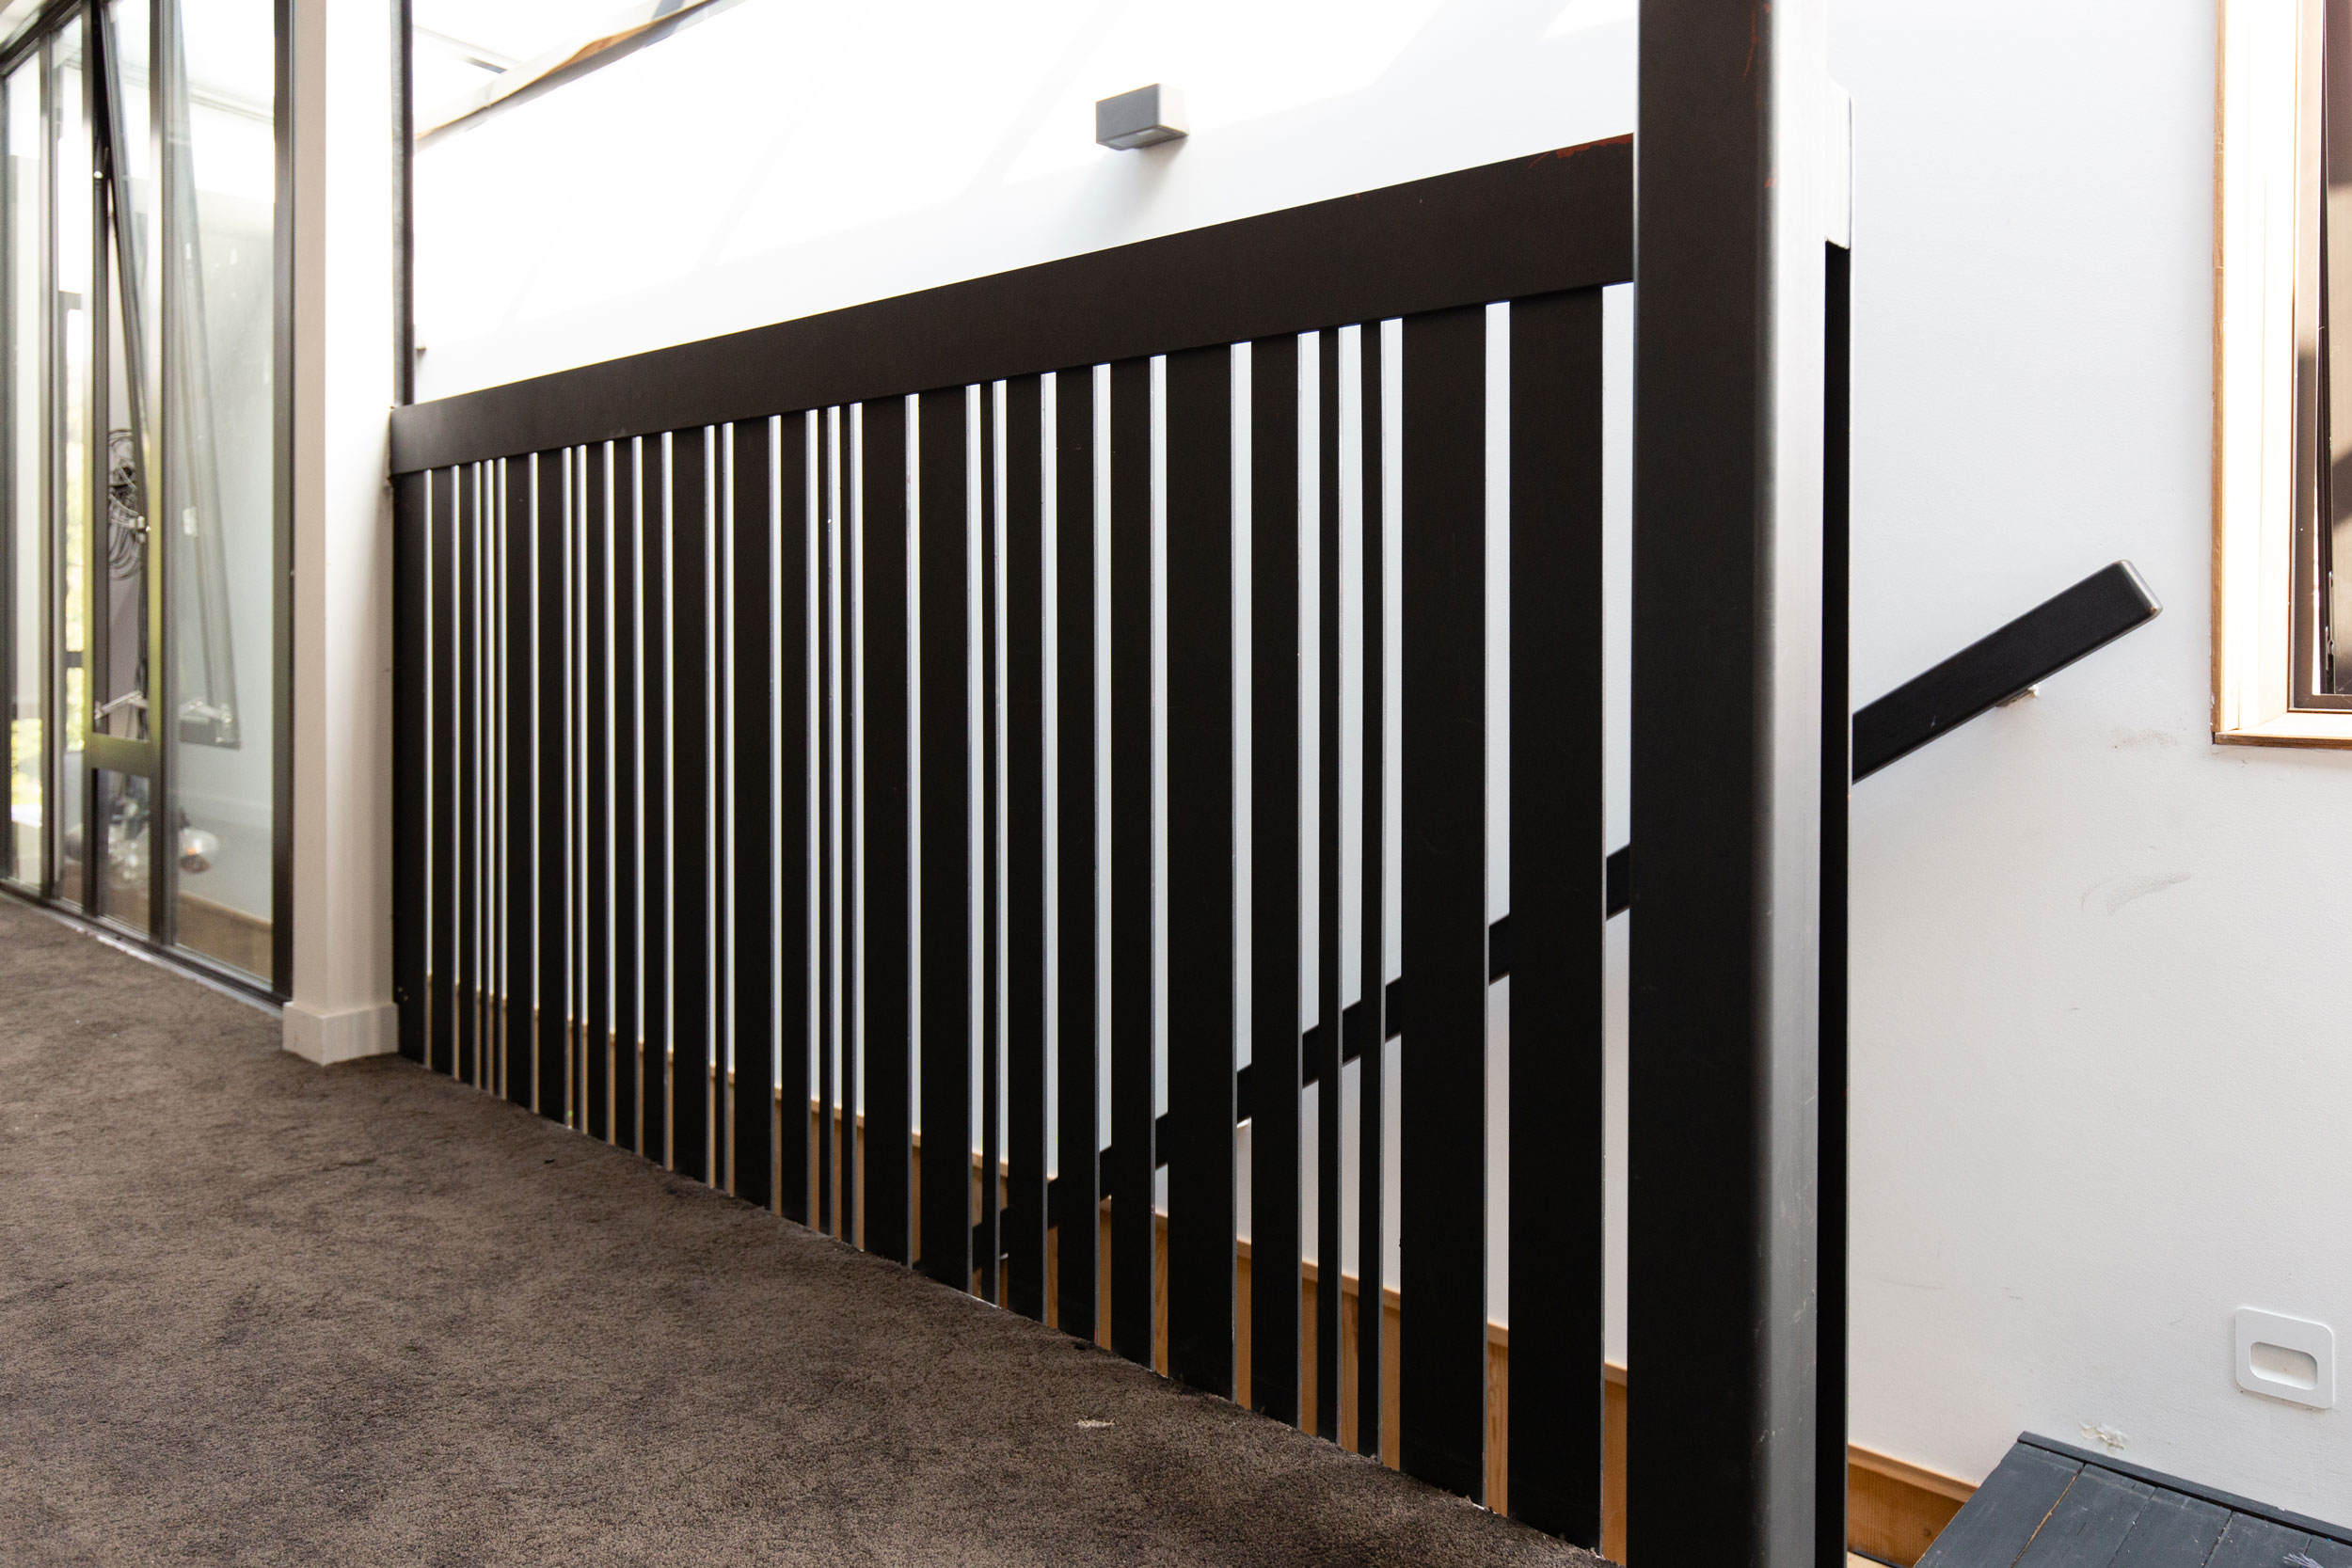 Slotted metal balustrade designed by Stairworks at the top of a staircase.